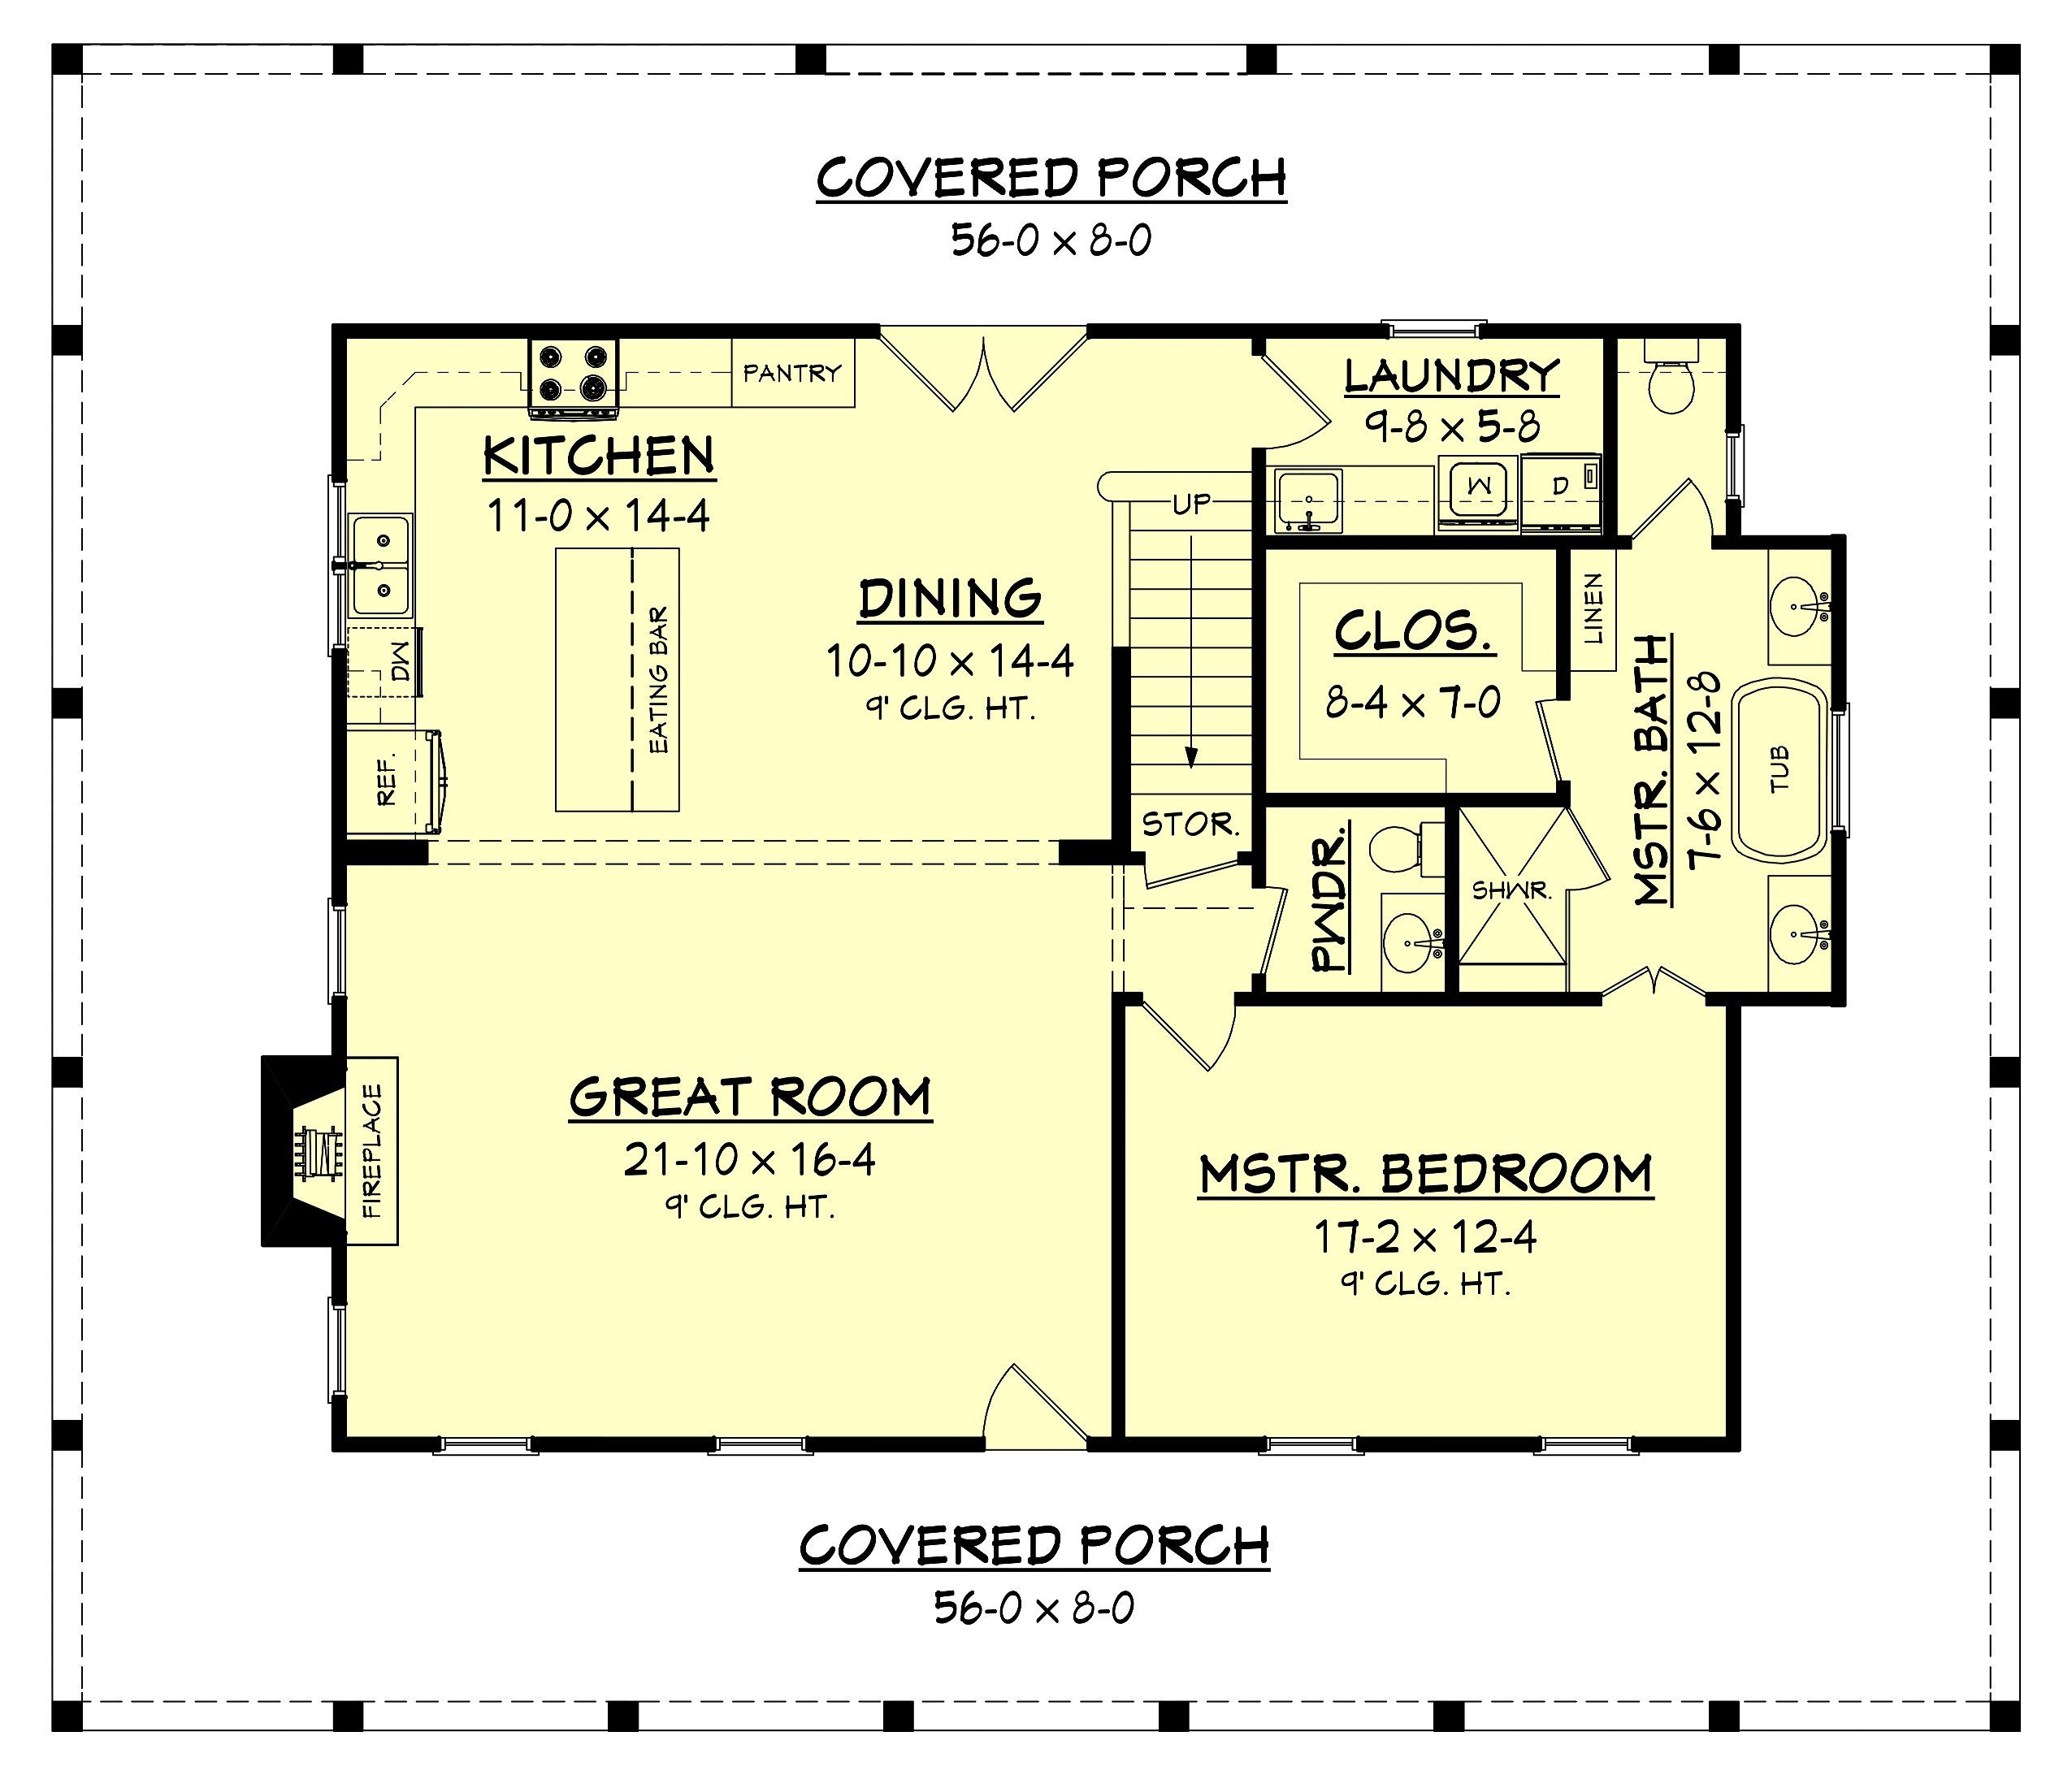 This Beautiful Two Story Country House Plan Design Features Wrap Around Porches And Open Conc House Plans One Story Country House Plan Barndominium Floor Plans